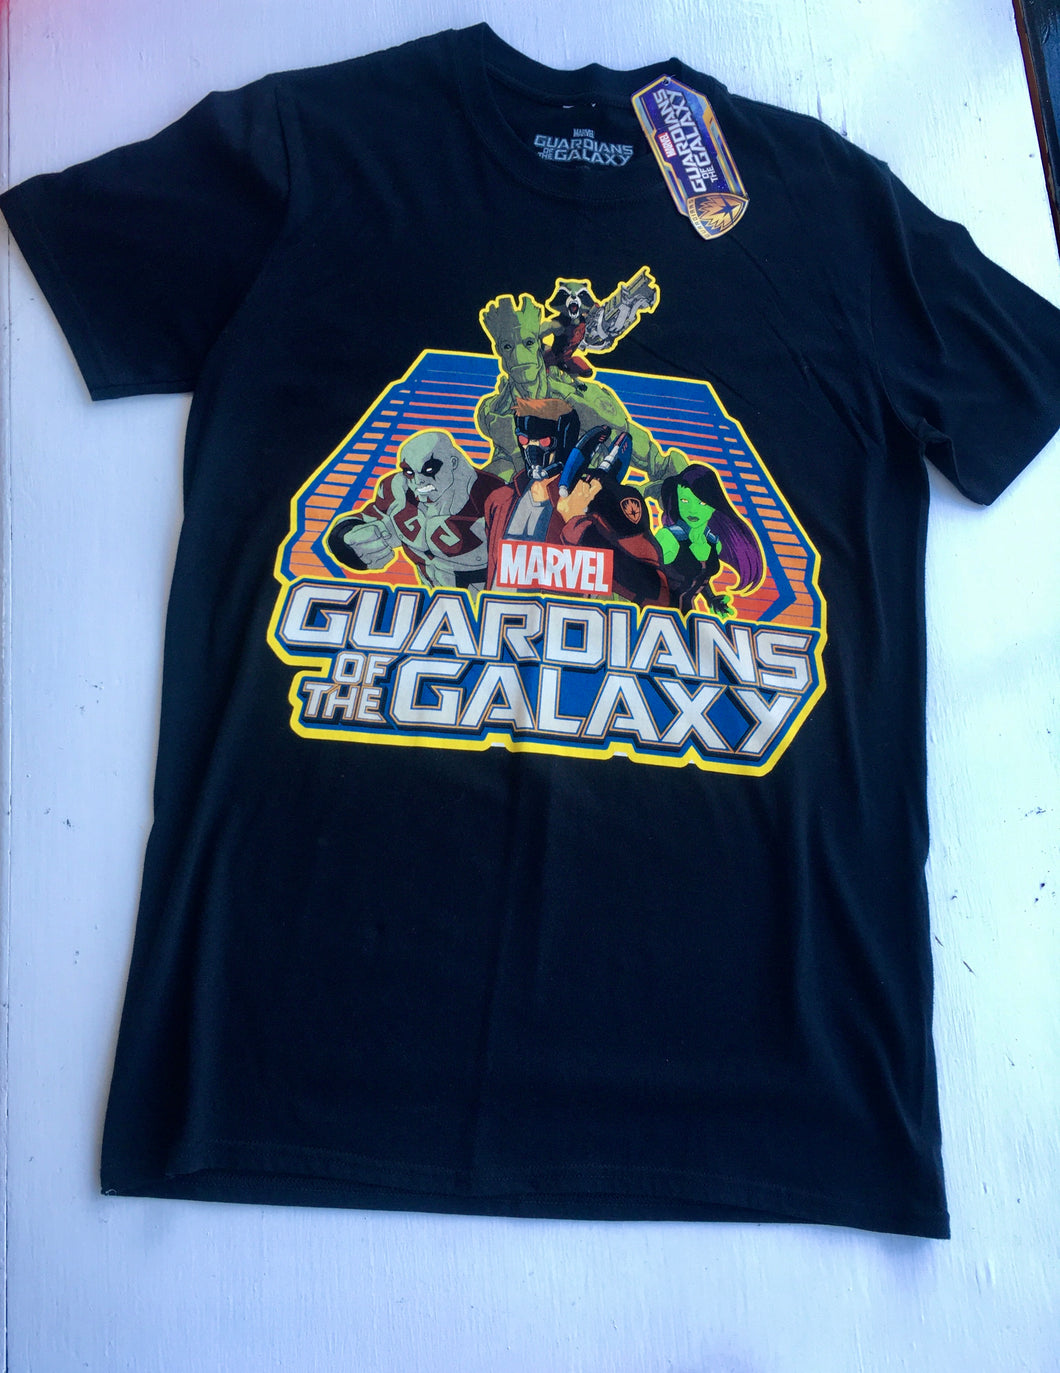 Guardians of the galaxy tee shirt